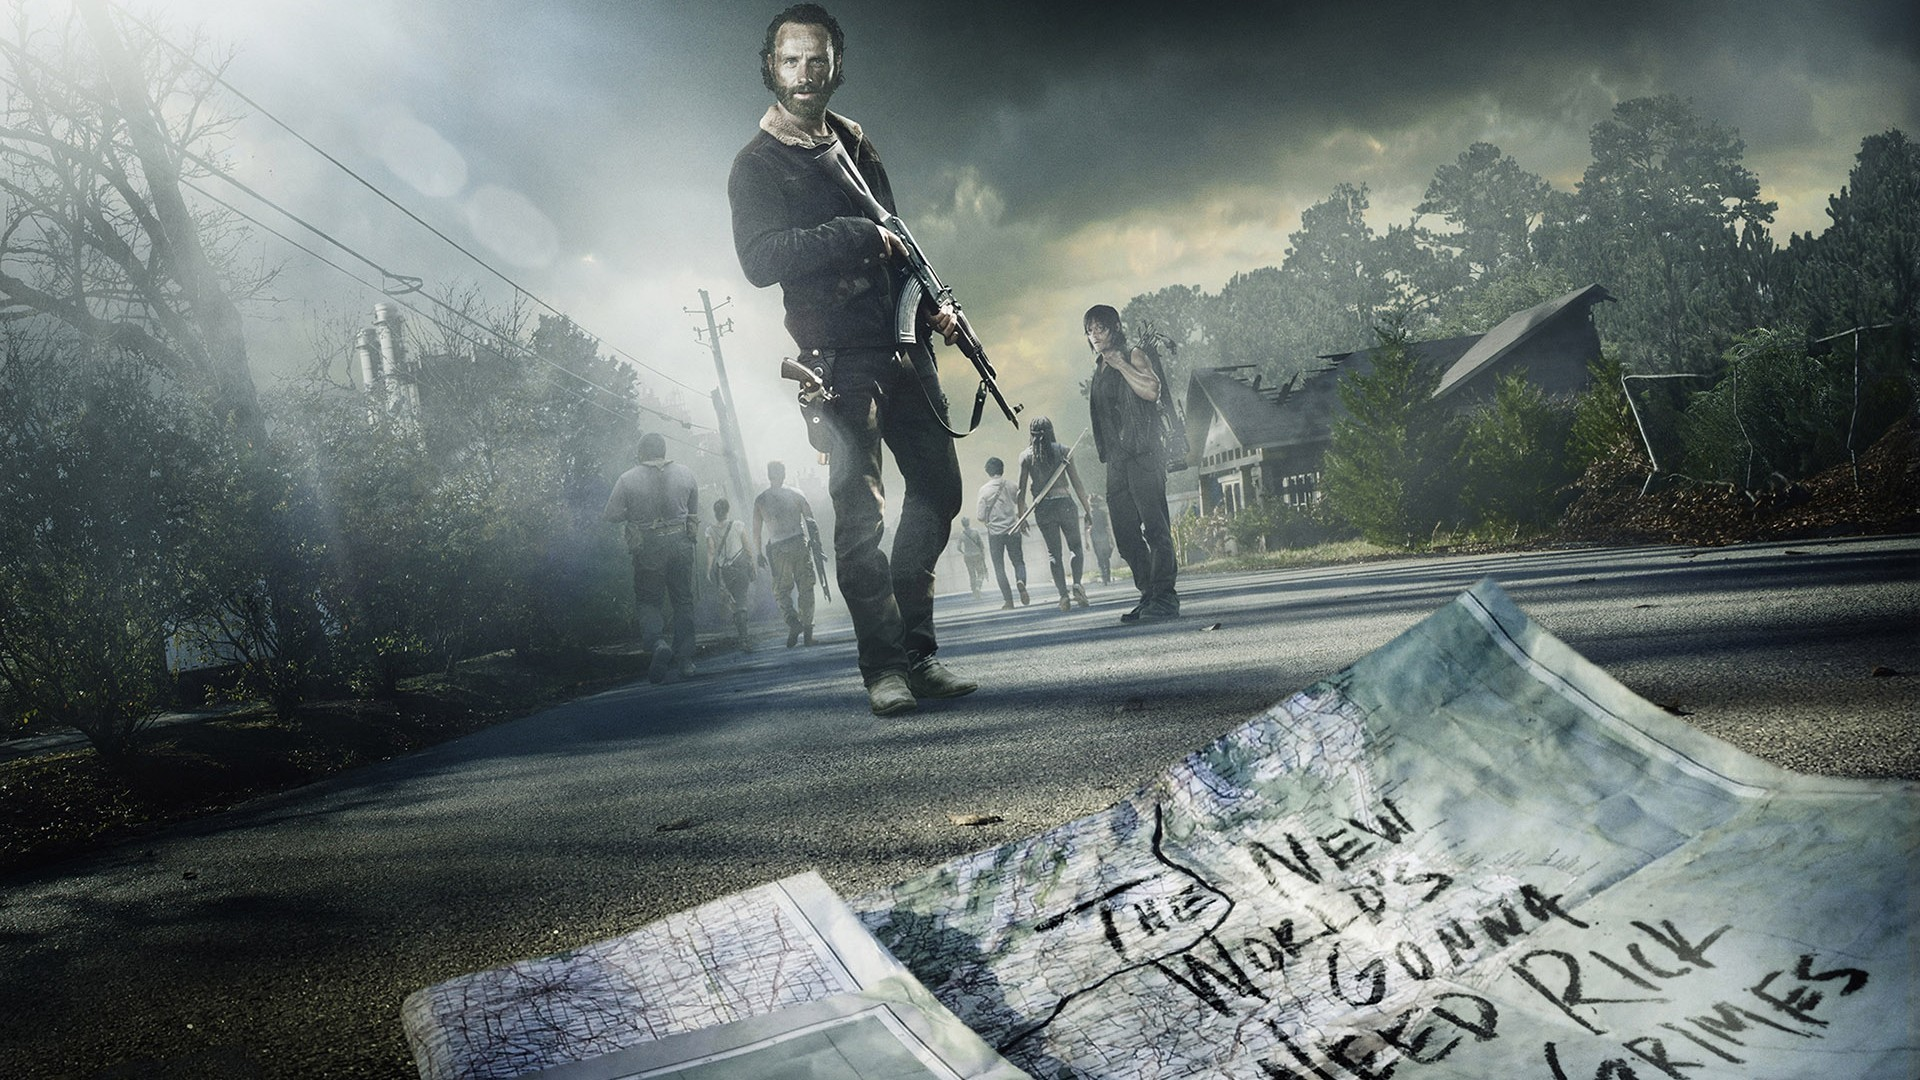 the walking dead wallpaper for mobile - drive.cheapusedmotorhome